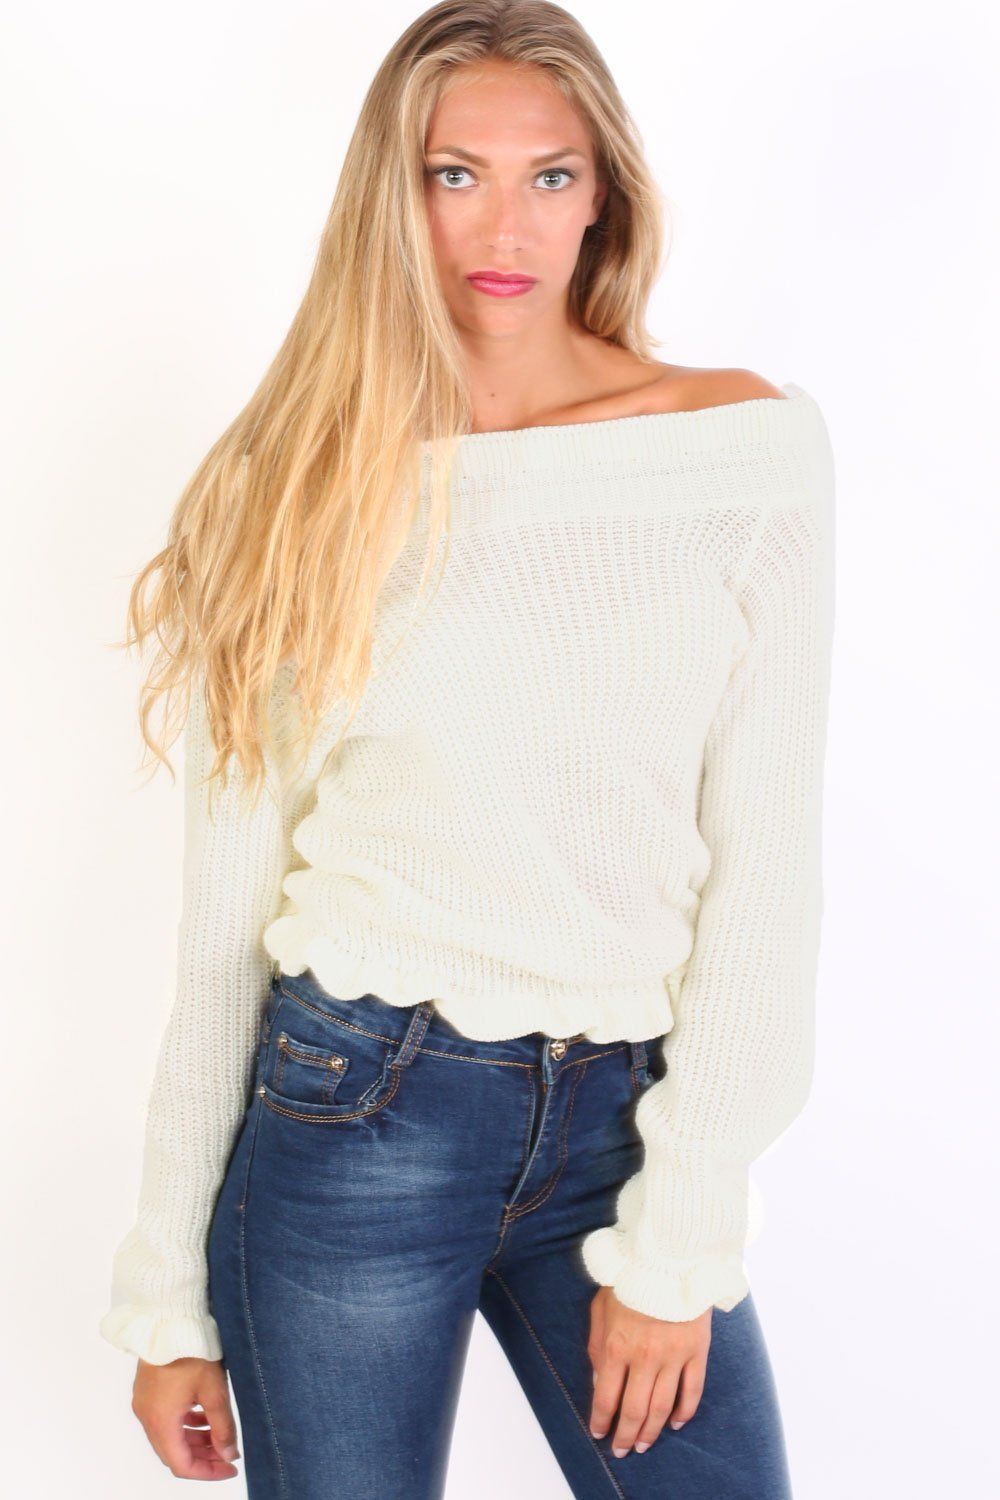 Frill Neck Long Sleeve Knitted Jumper in Cream 0